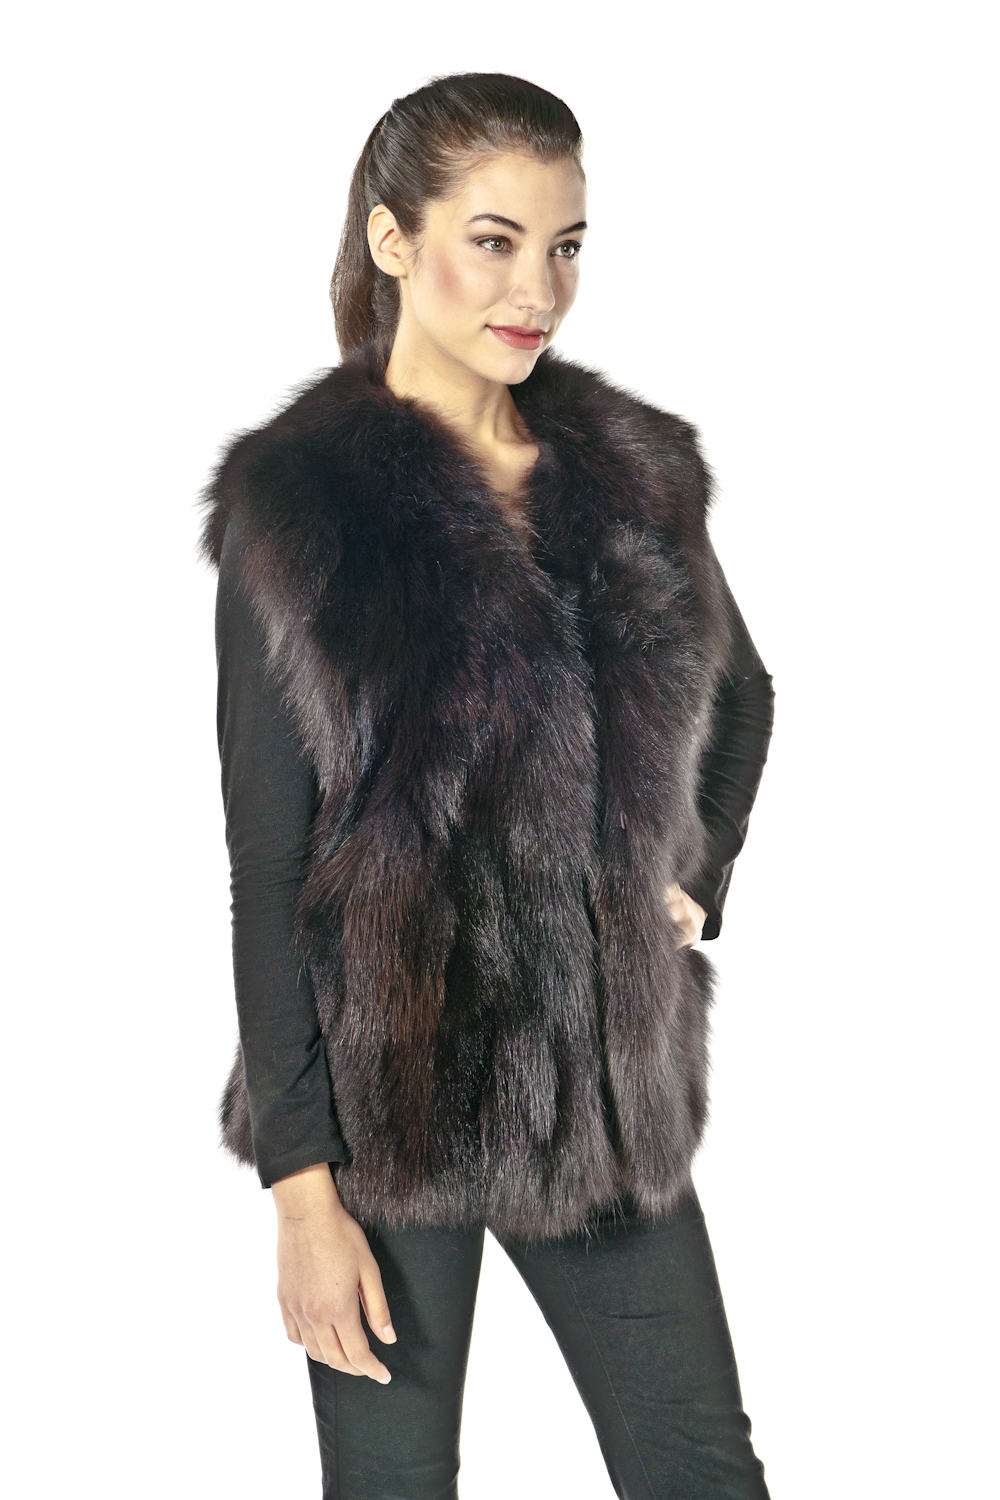 Brown sheared mink fur vest reversible to brown taffeta features casual styling, velvet lined slit pockets and stand-up collar - Women's XS - Day Furs Carmel Indiana.